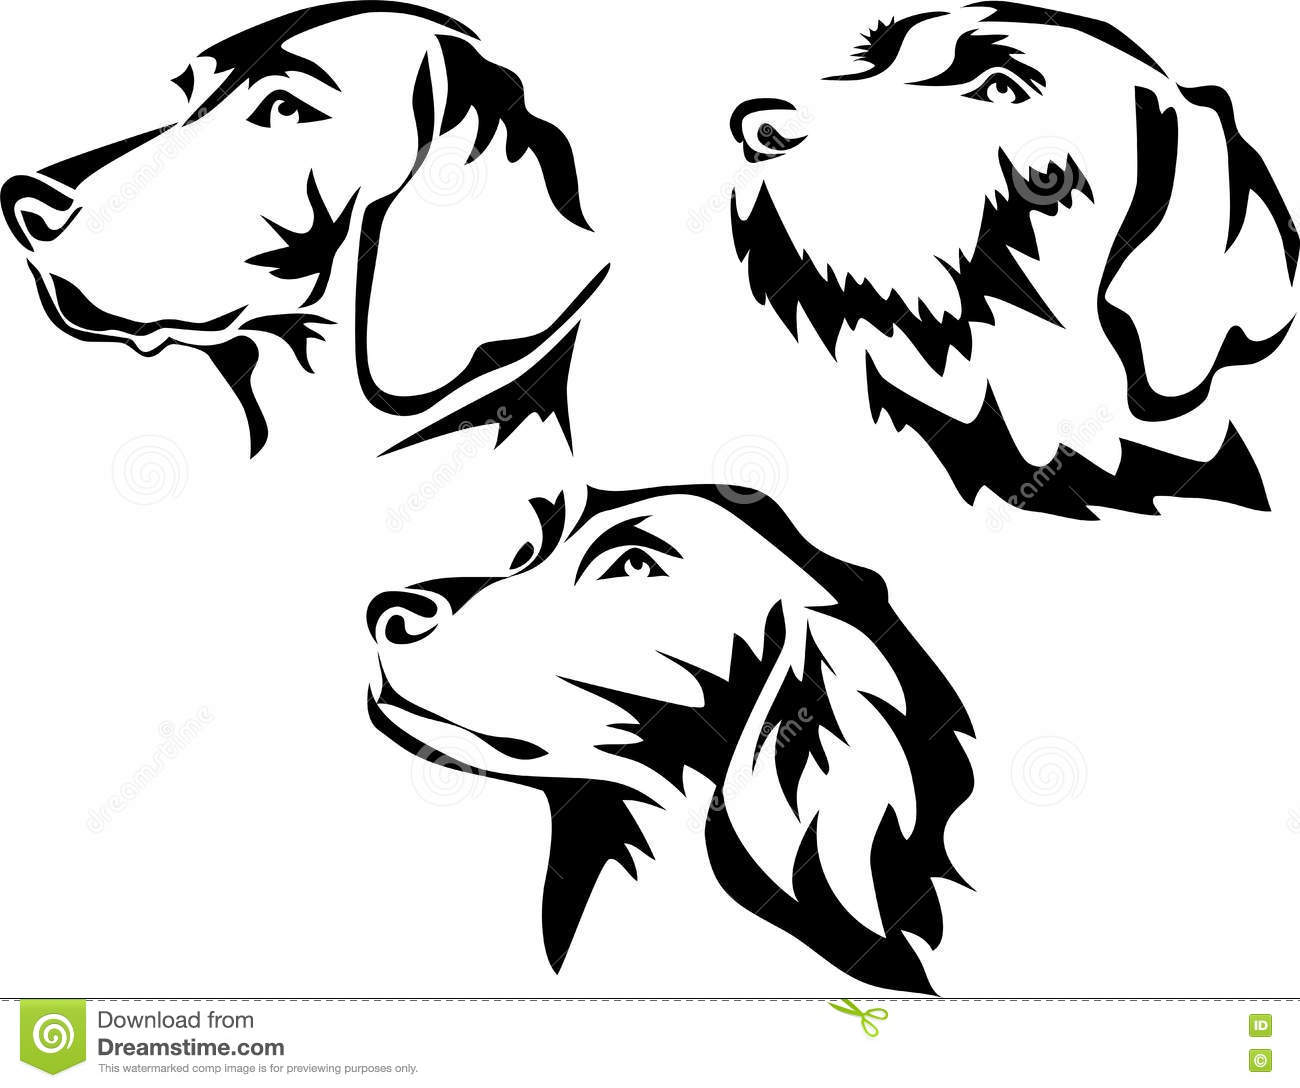 German wirehaired pointer clipart banner royalty free German Shorthaired Pointer Stock Illustrations – 44 German ... banner royalty free